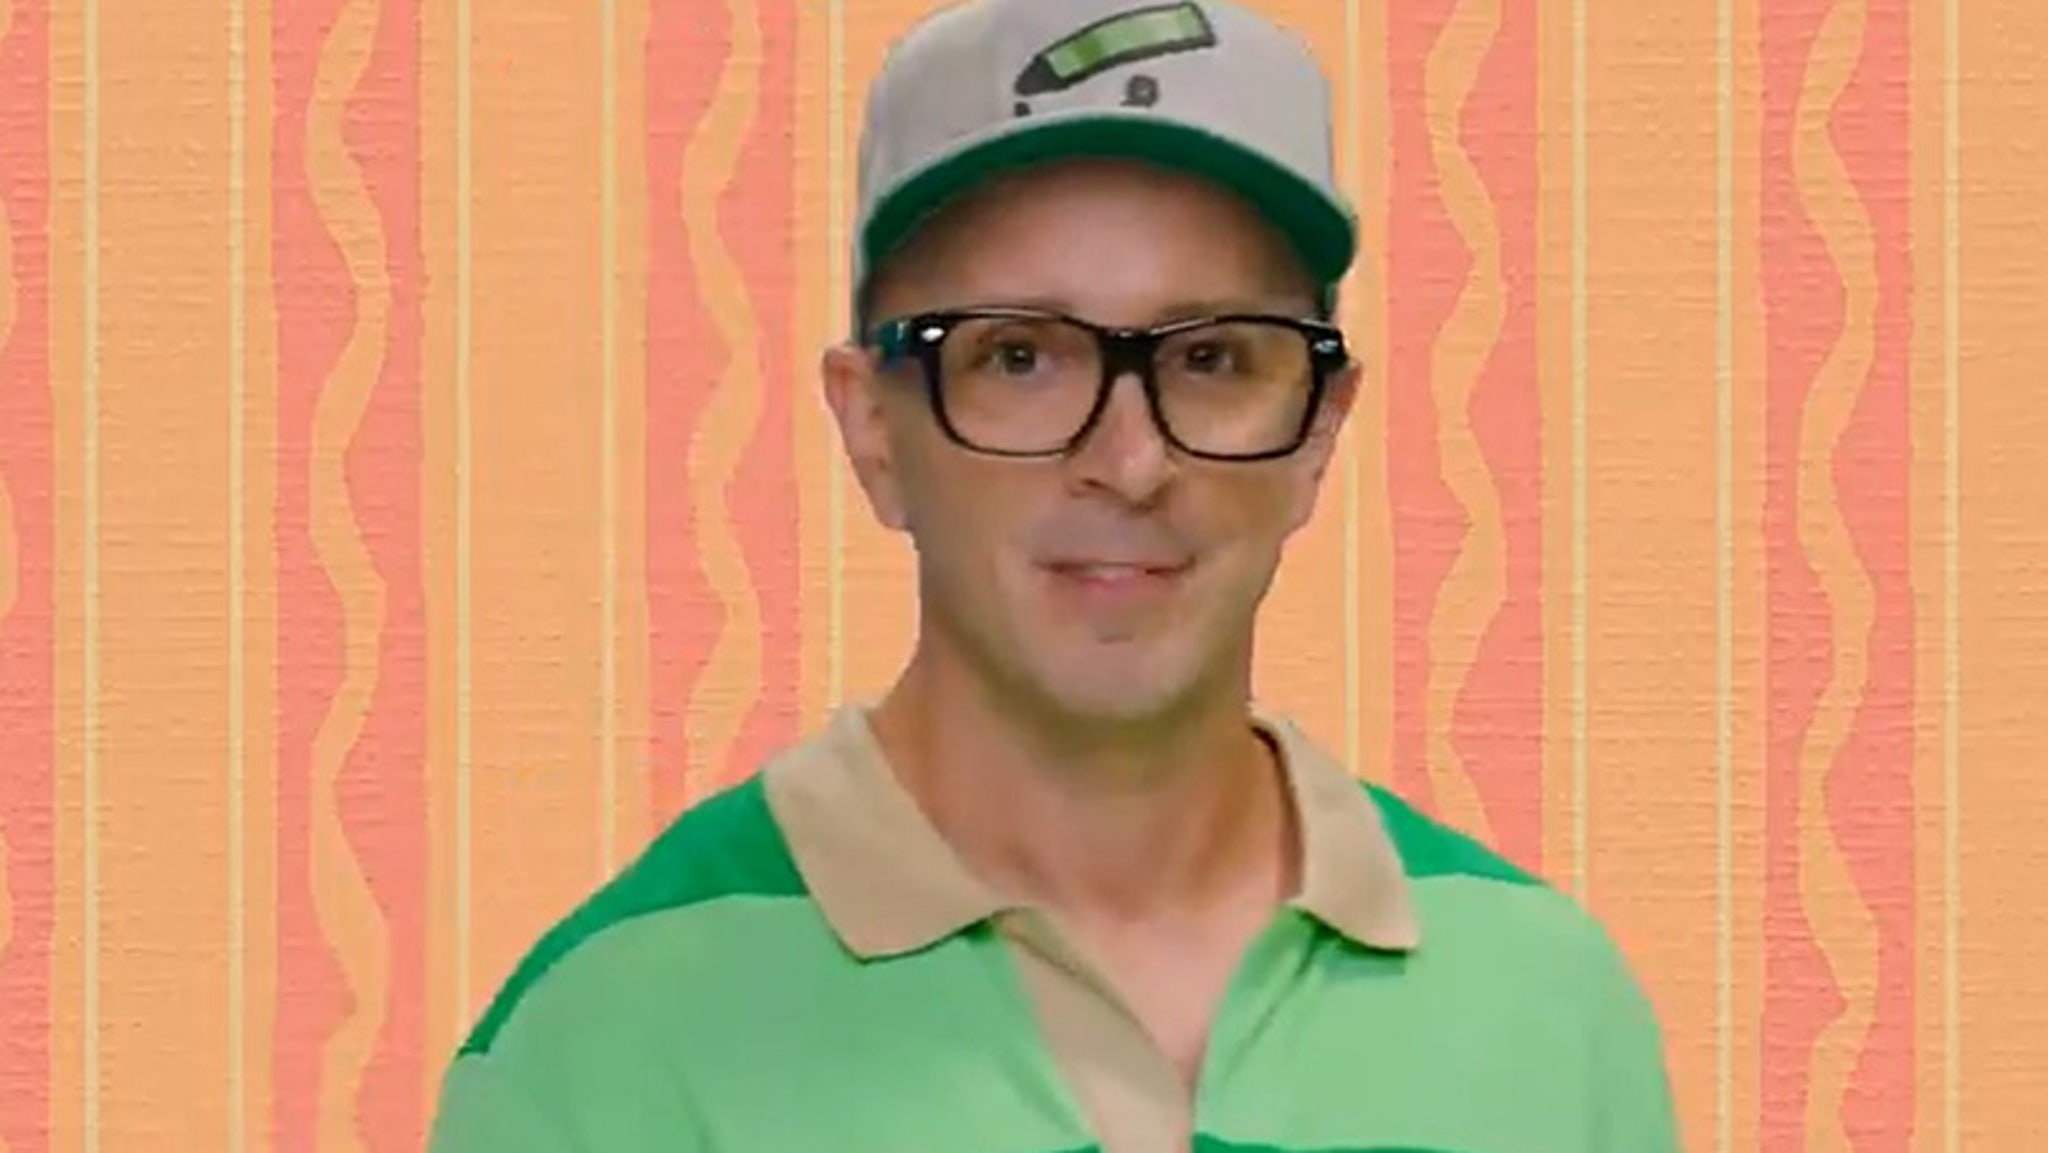 Steve Checks in for Blues Clues 25th Anniversary with